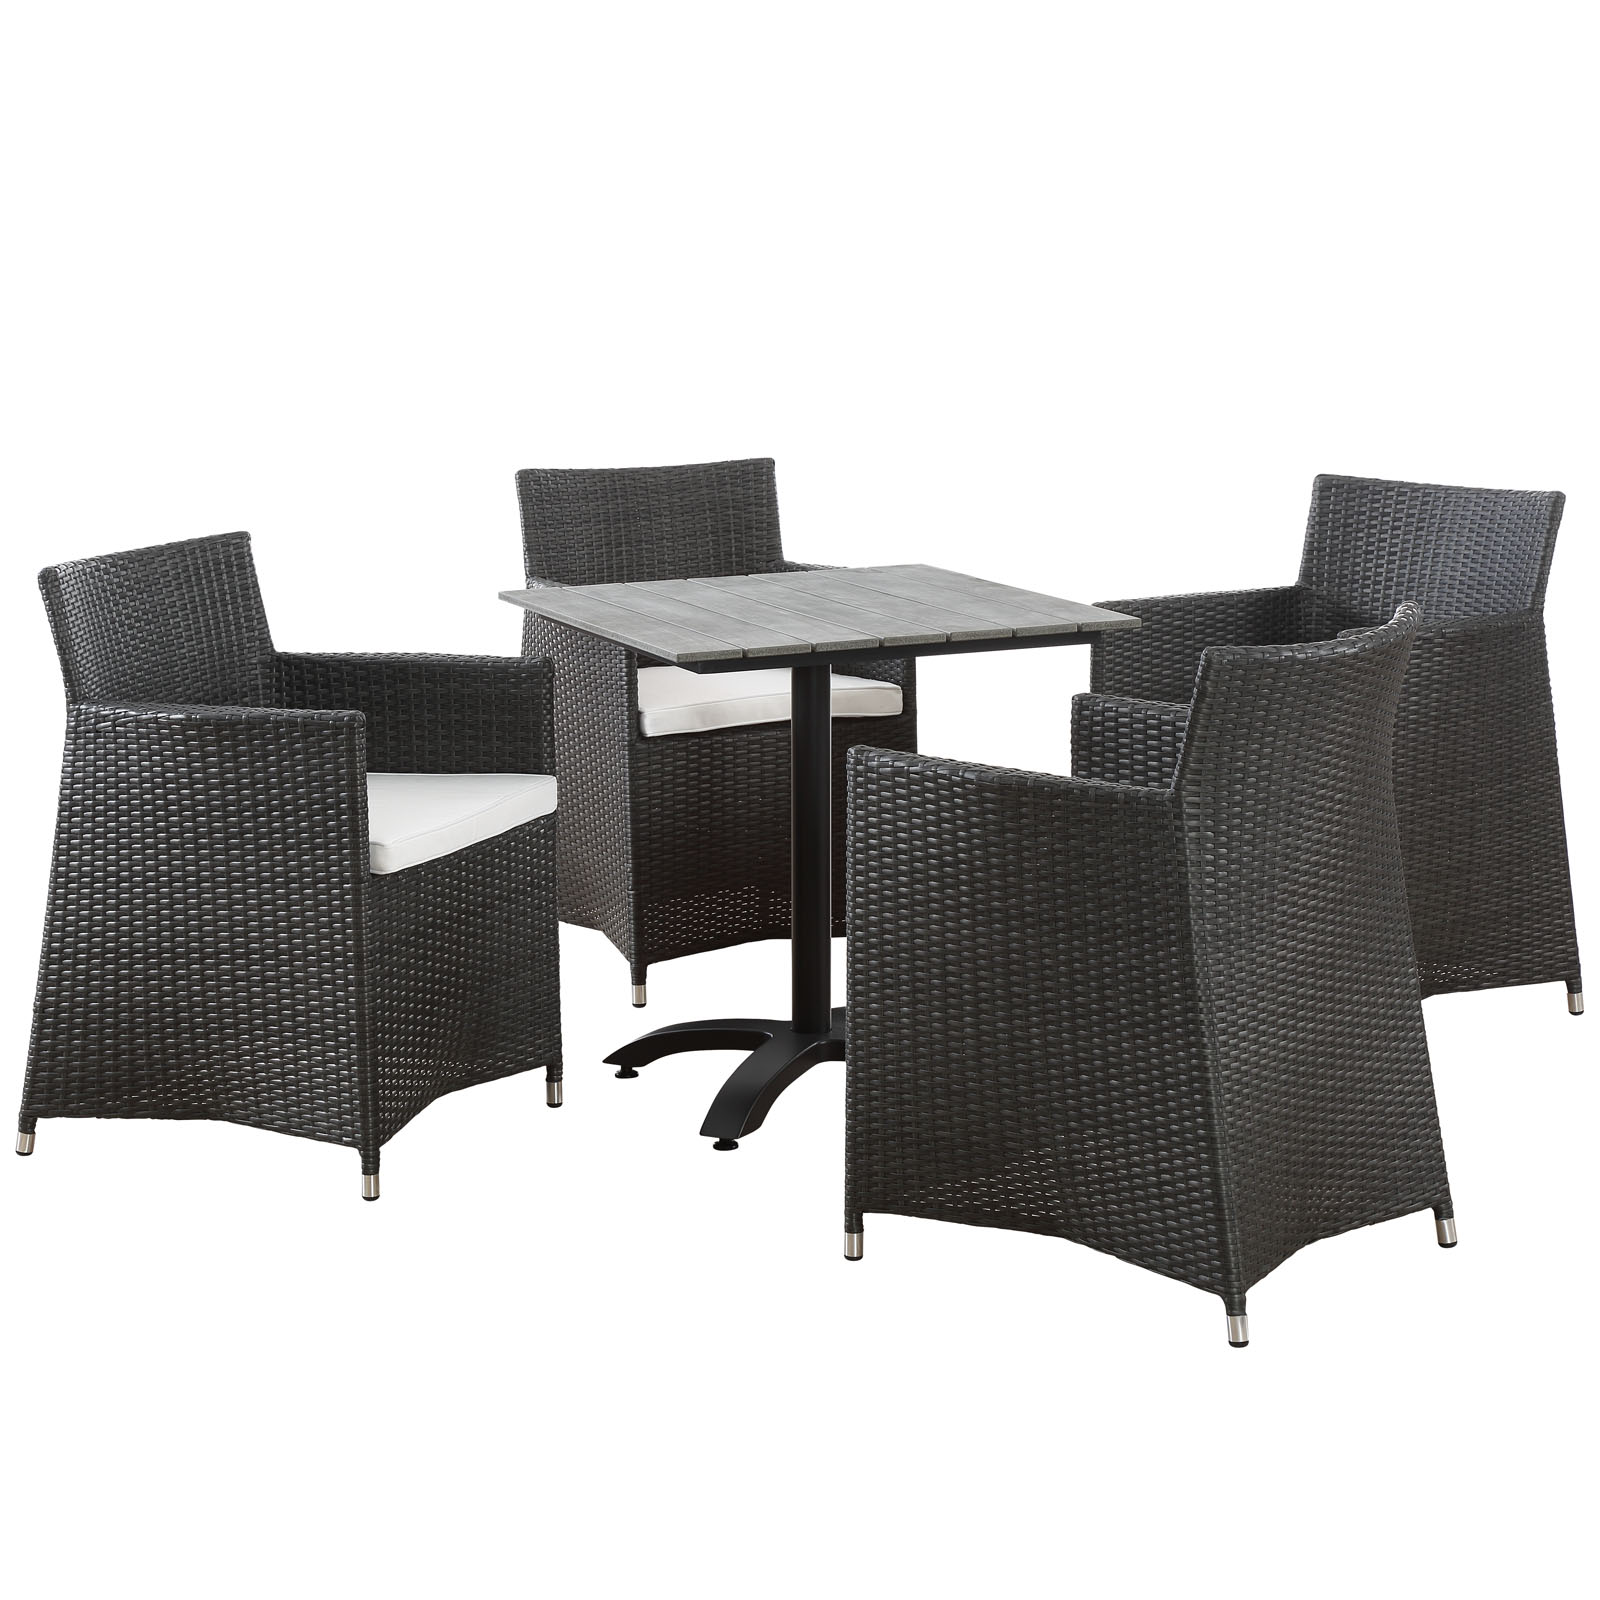 Modern Urban Contemporary 5 pcs Outdoor Patio Dining Set, Brown White Plastic